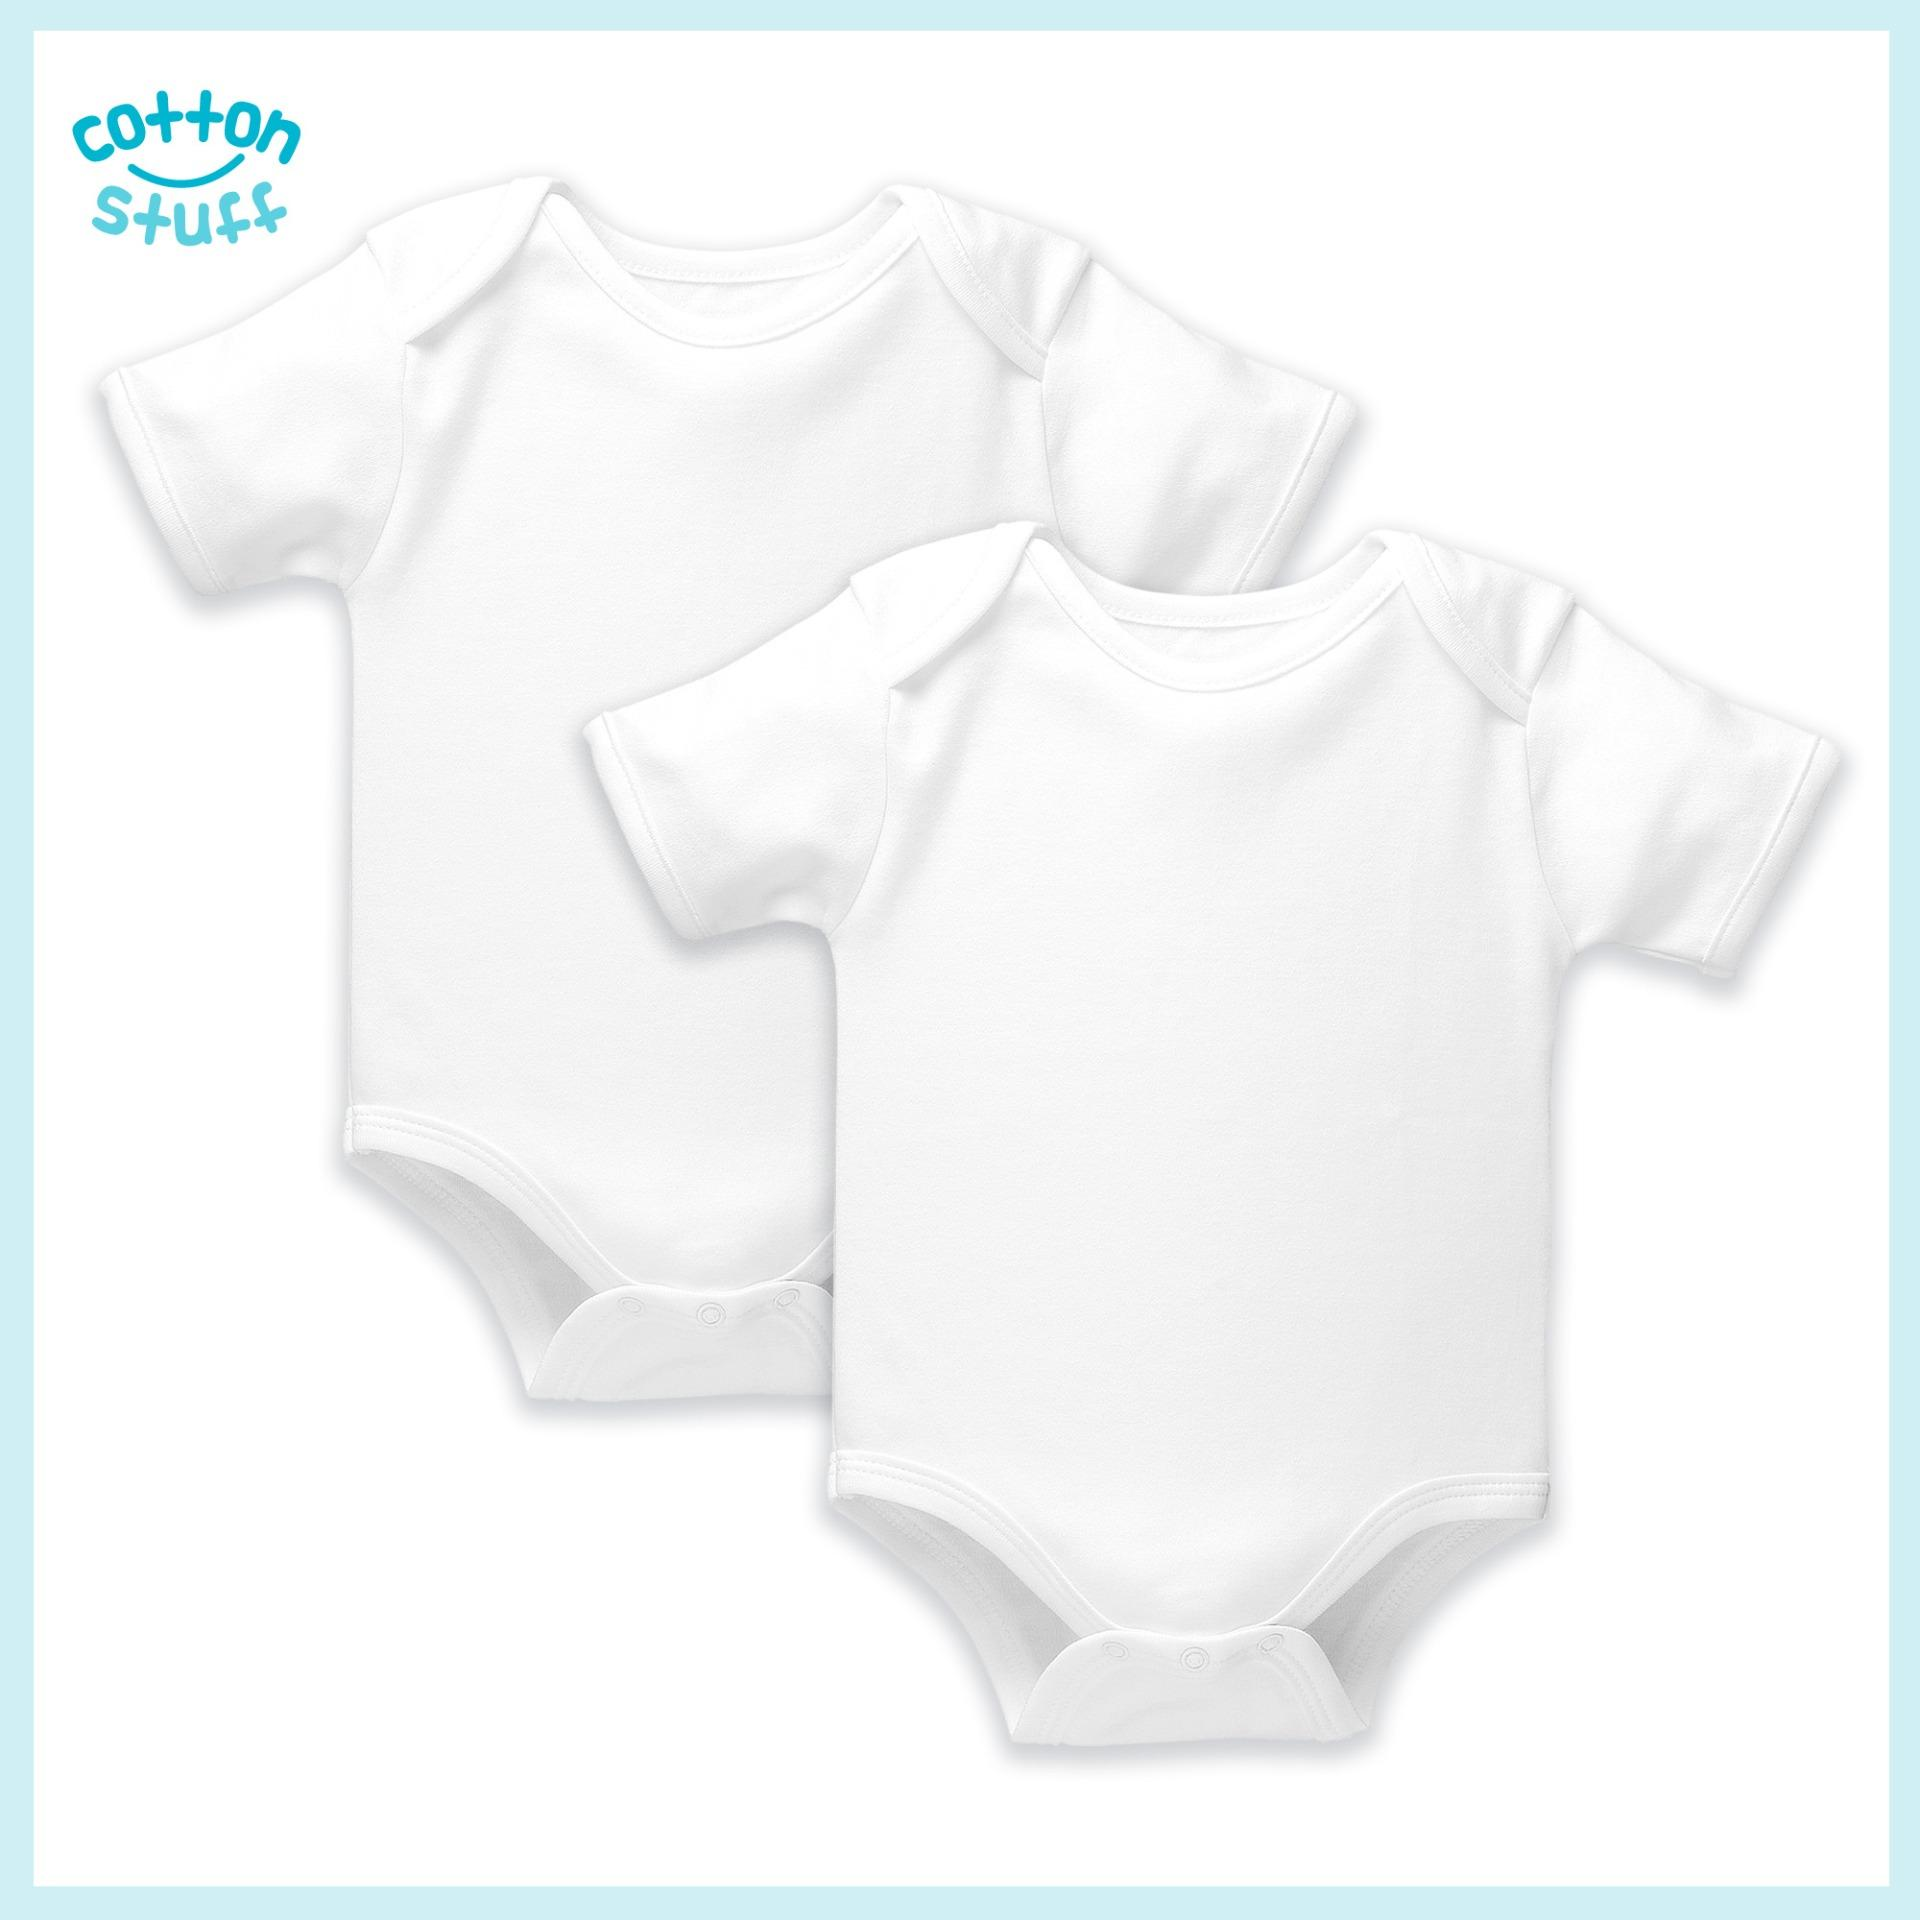 674a34154 Onesie for sale - Baby Onesies Online Deals & Prices in Philippines ...